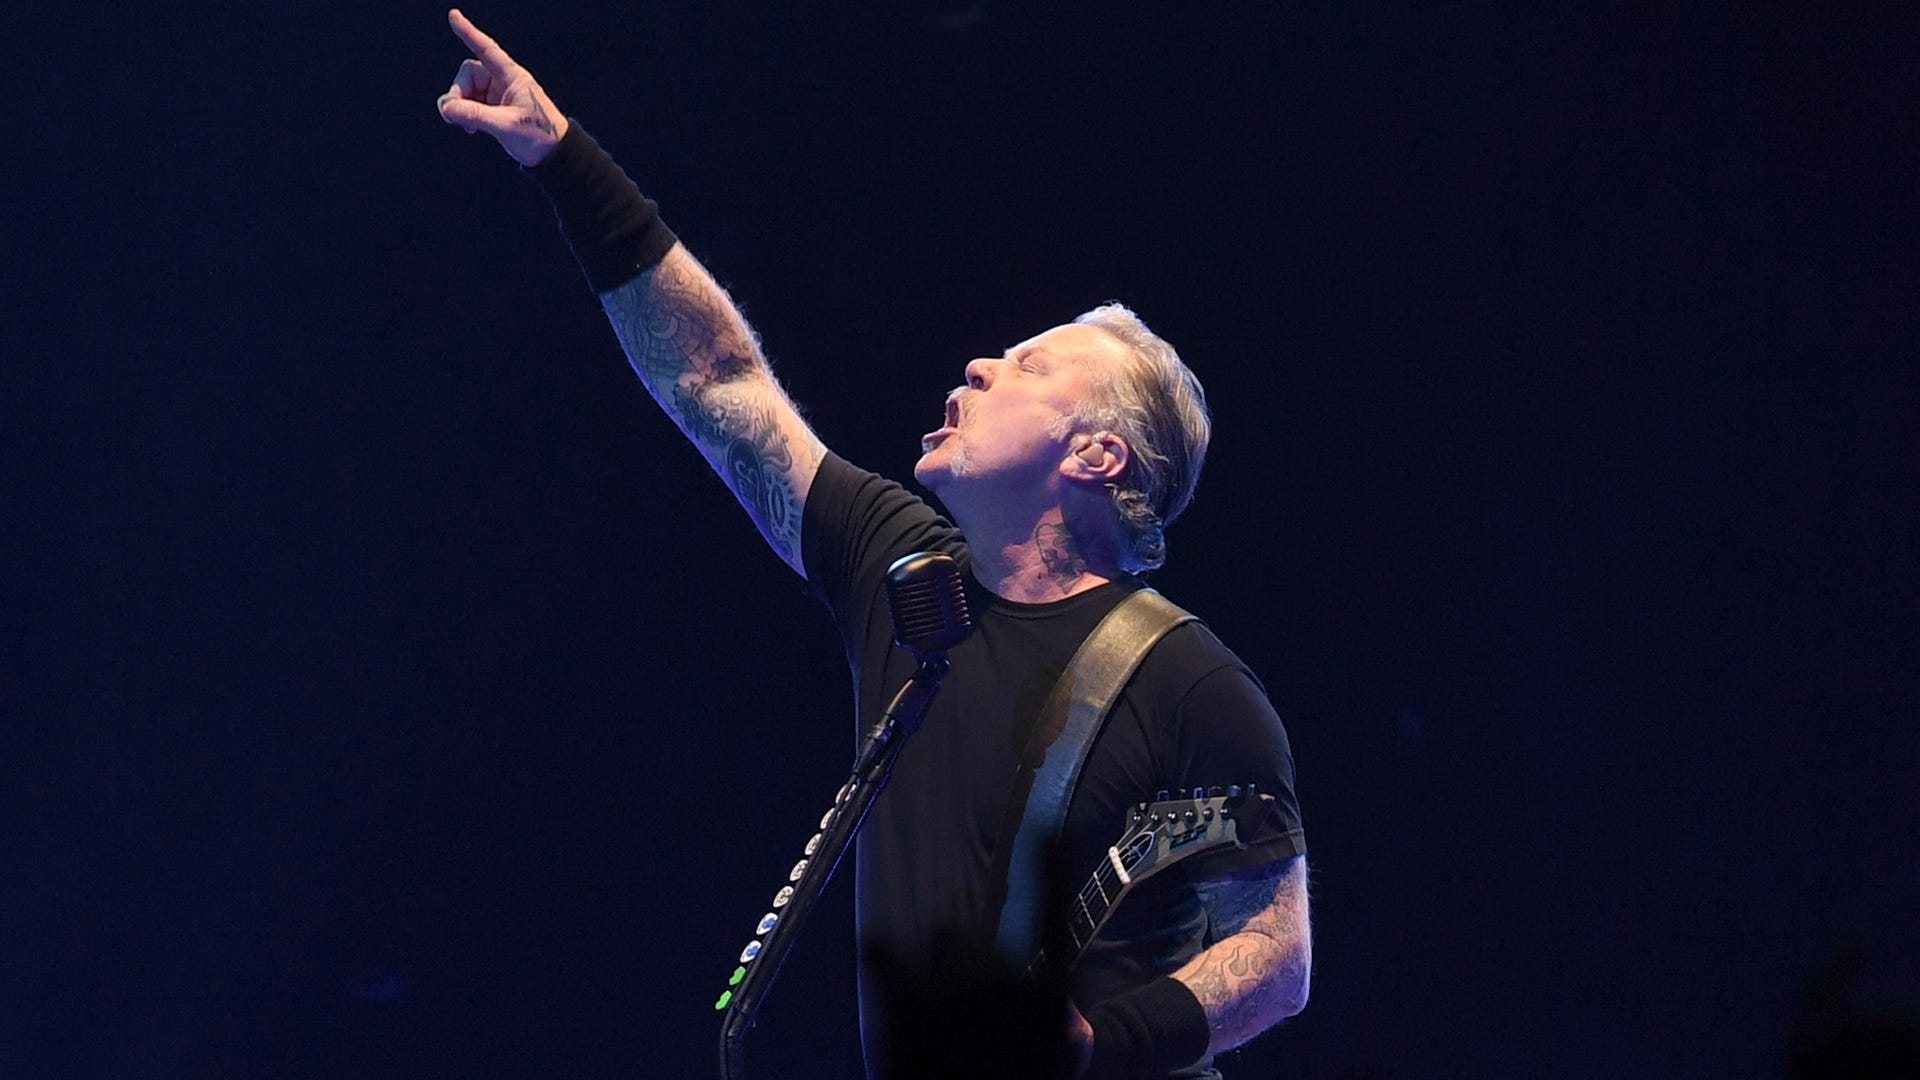 Celebrate 30 years of 'The Black Album' with the Metallica Podcast